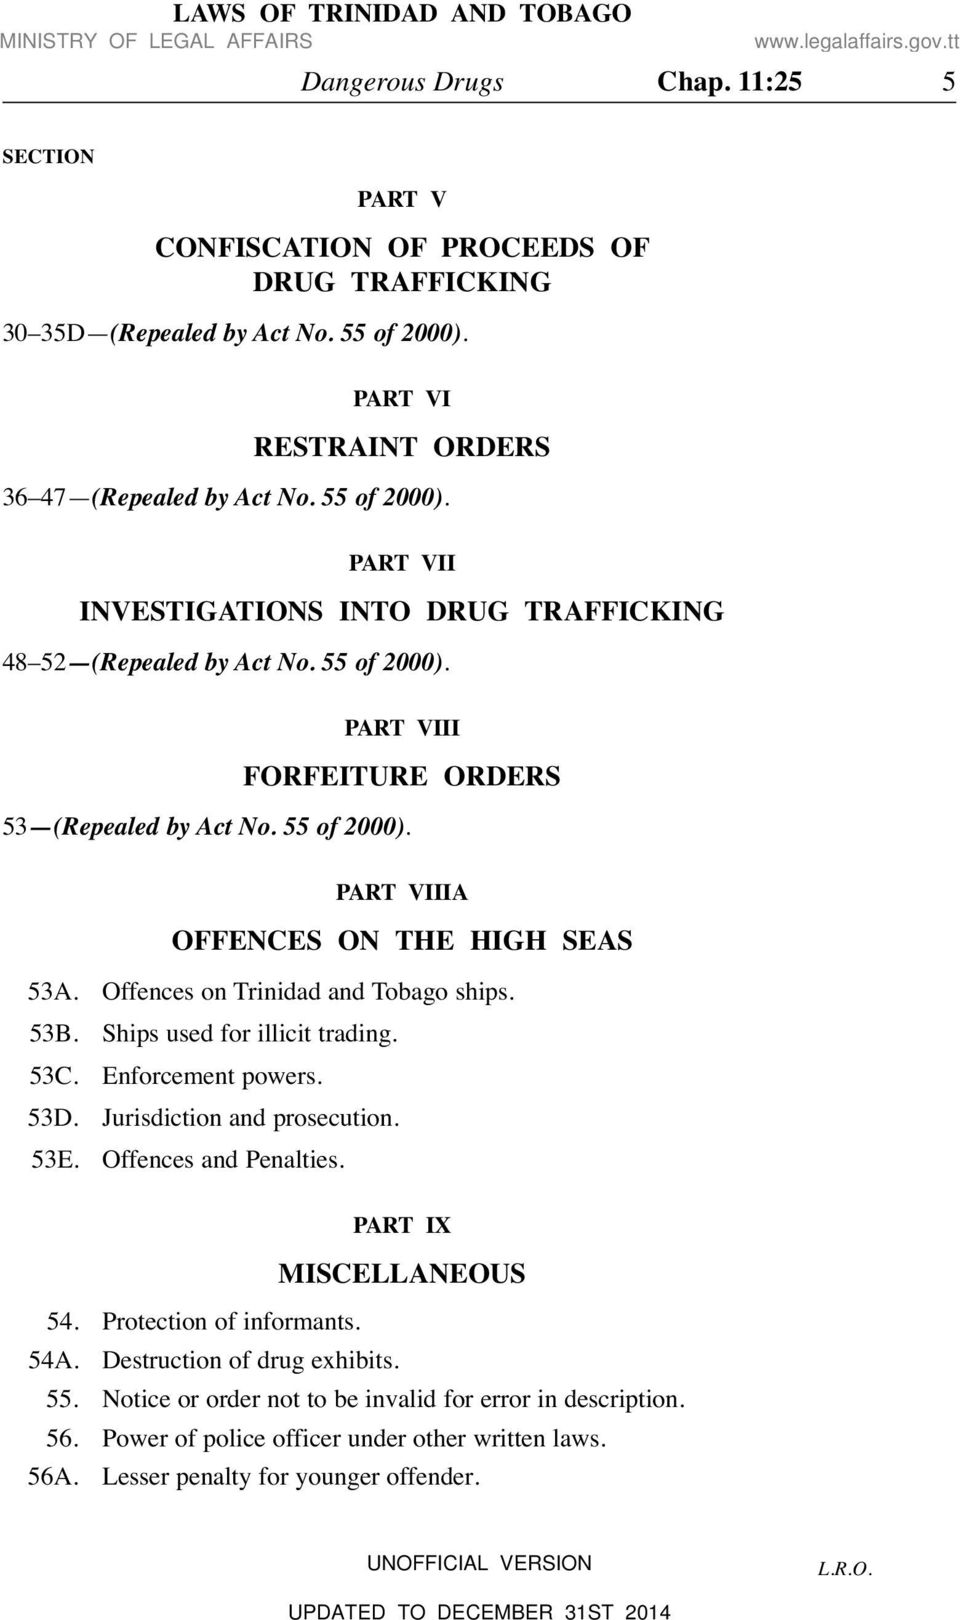 55 of 2000). PART VIIIA OFFENCES ON THE HIGH SEAS 53A. Offences on Trinidad and Tobago ships. 53B. Ships used for illicit trading. 53C. Enforcement powers. 53D. Jurisdiction and prosecution. 53E.